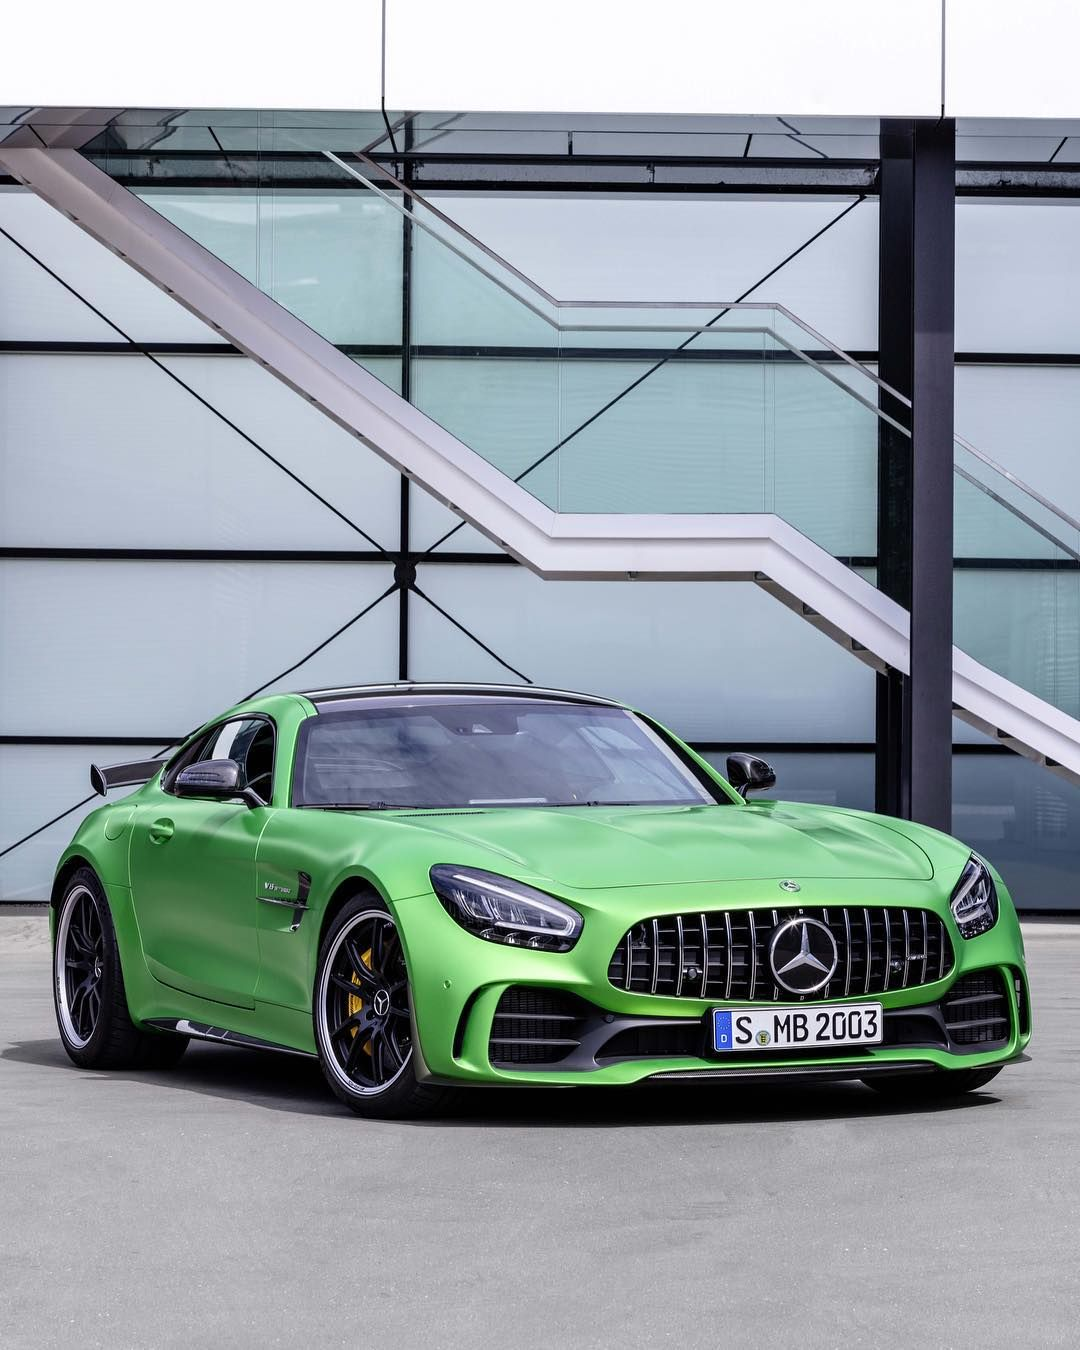 The Amg Gt Coupe And Convertibles Gets An Update For 2020